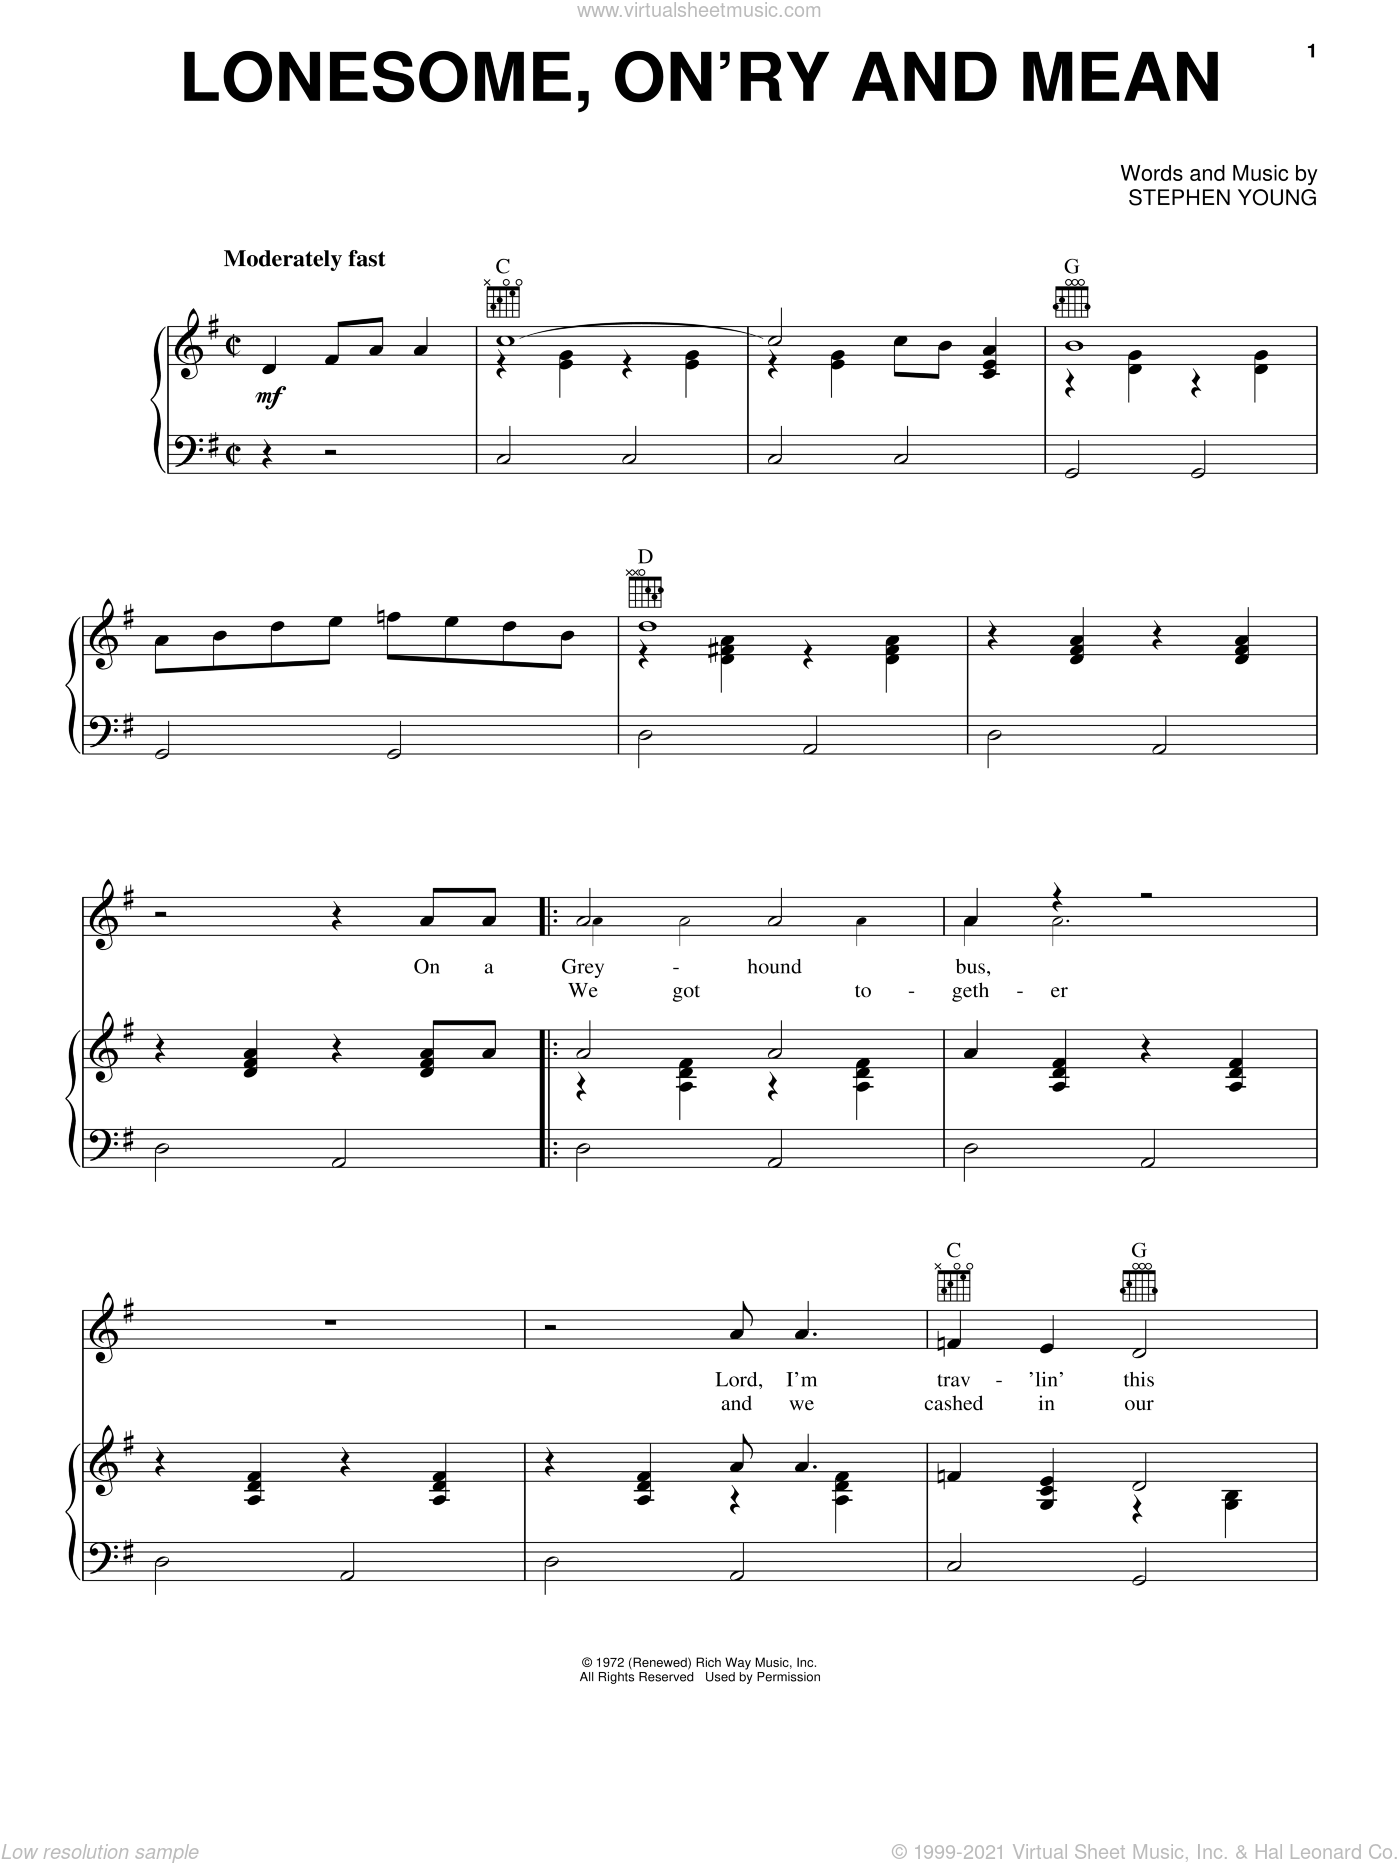 Lonesome, On'ry And Mean sheet music for voice, piano or guitar by Waylon Jennings. Score Image Preview.